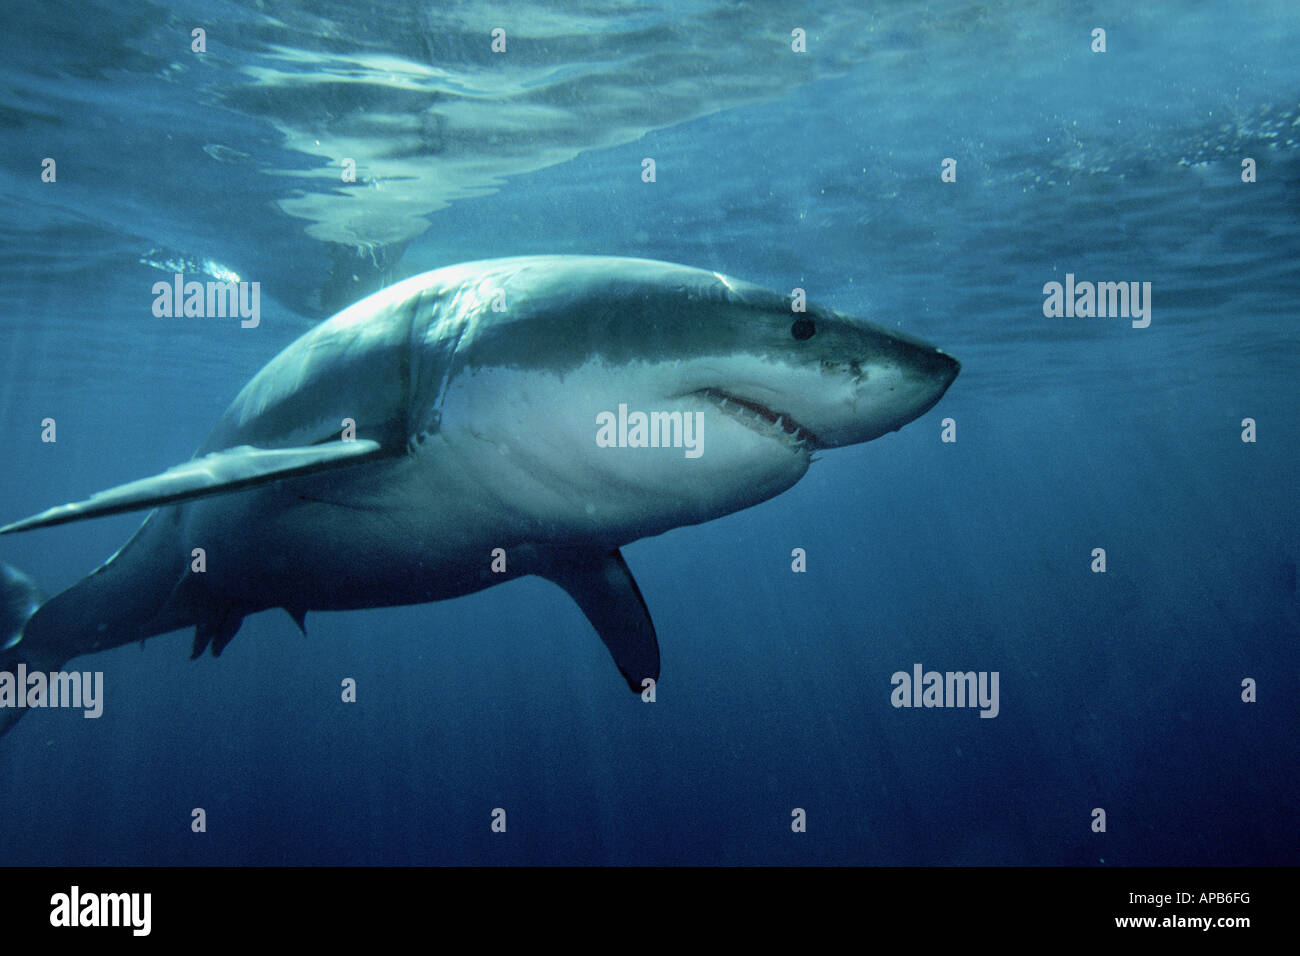 White shark Carcharhodon carcharias - Stock Image